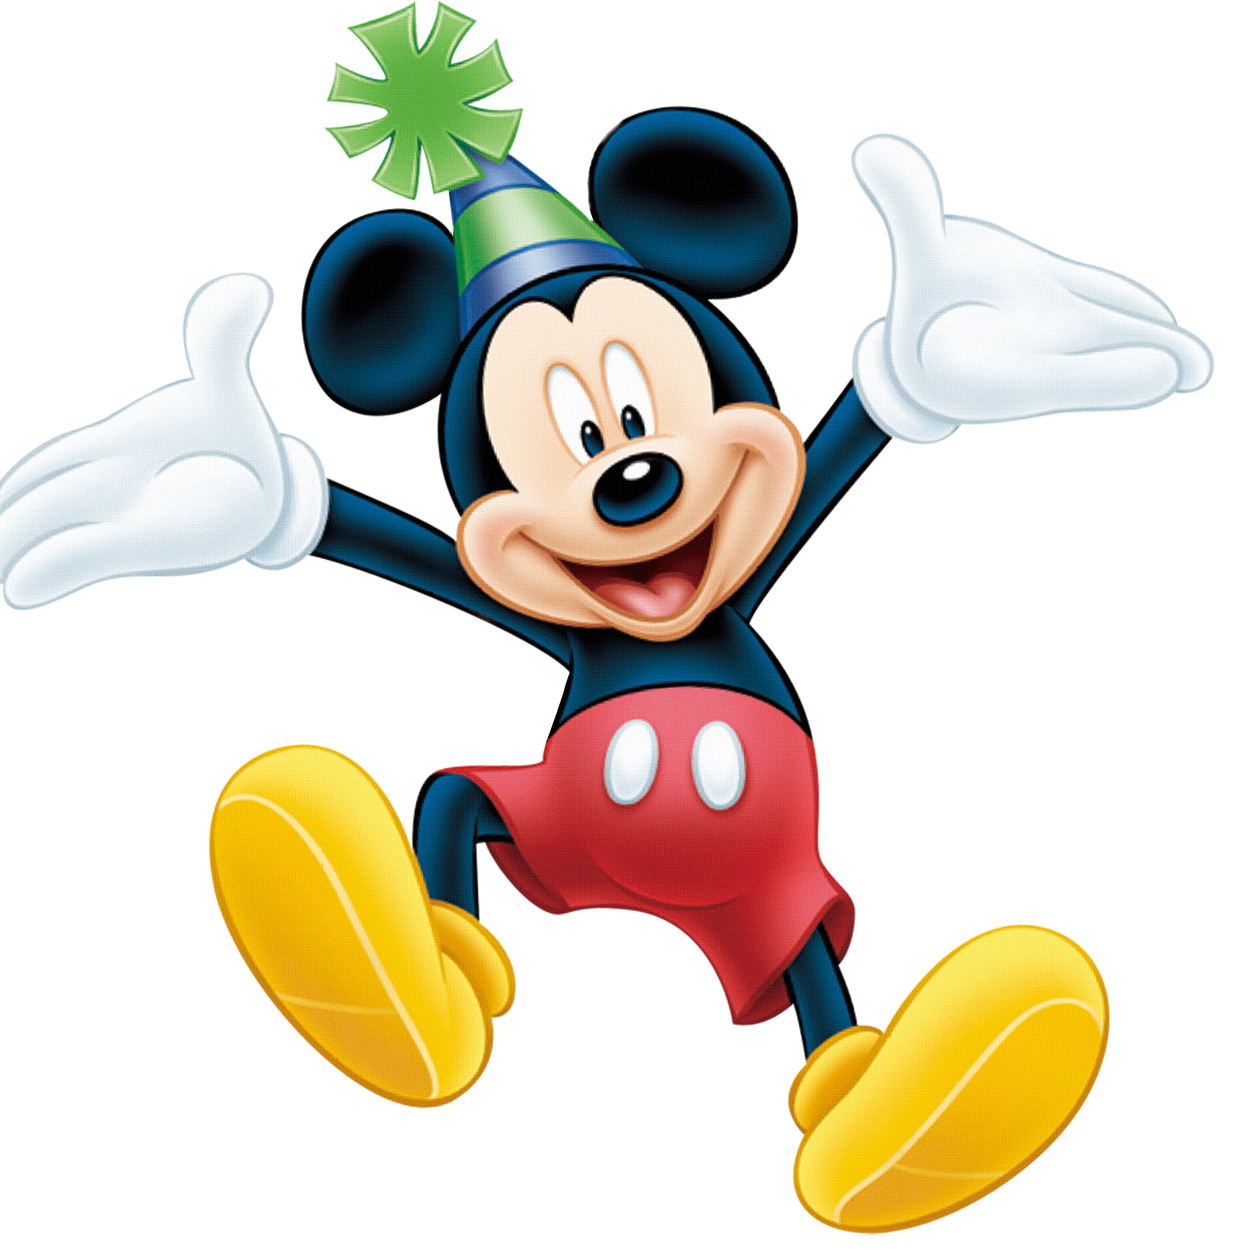 Mickey mouse png. Image purepng free transparent